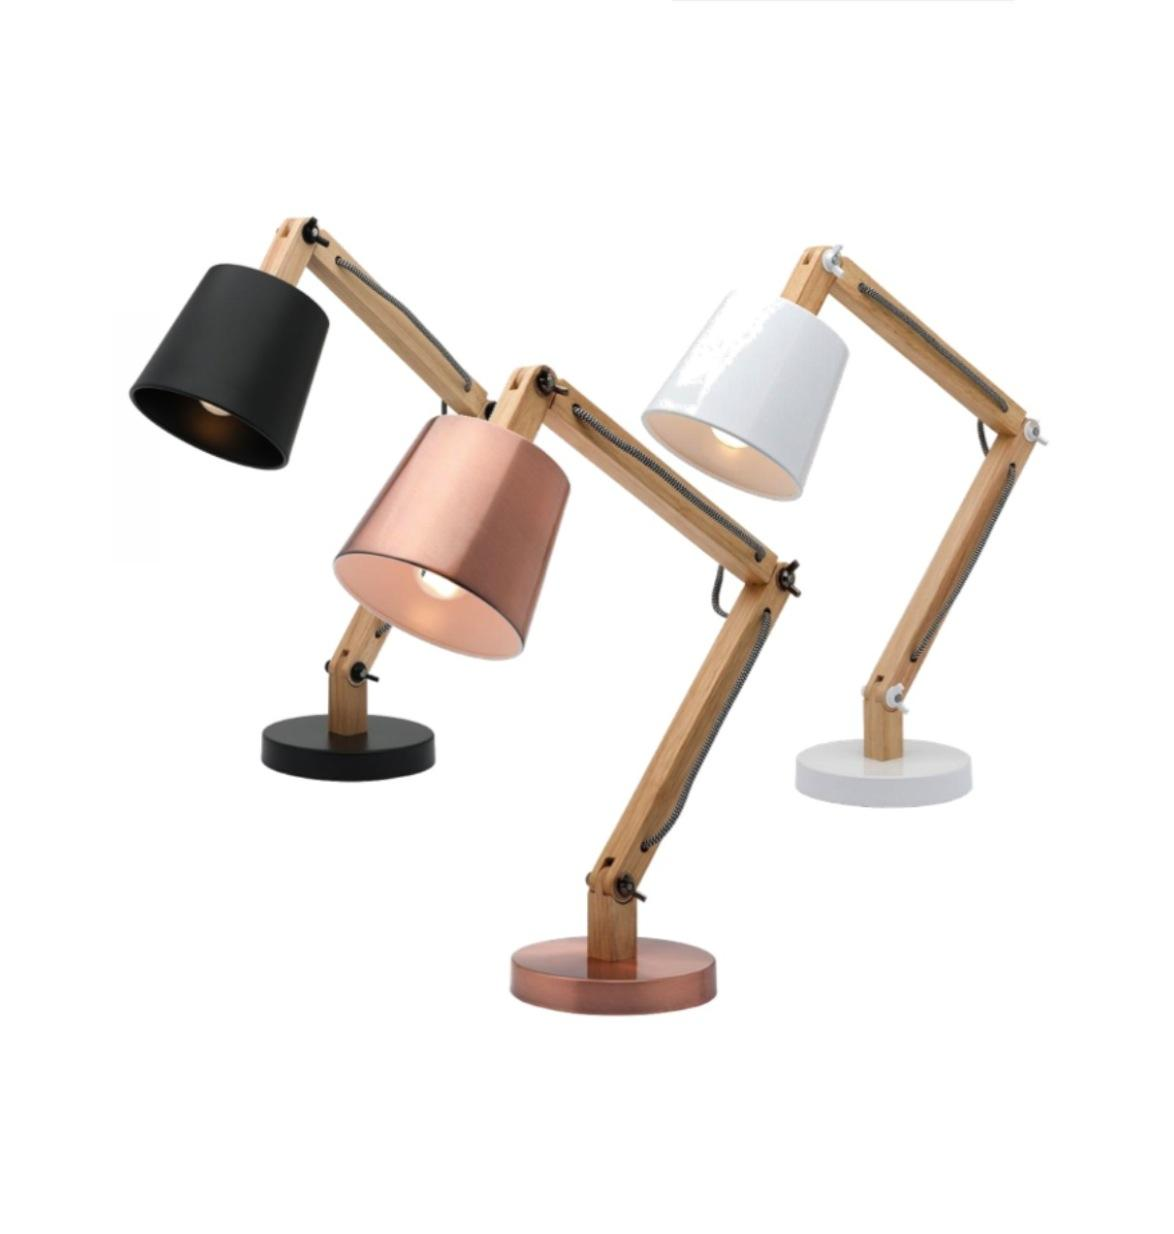 Piper timber table lamp copper lamps table lamps product piper timber table lamp copper geotapseo Images